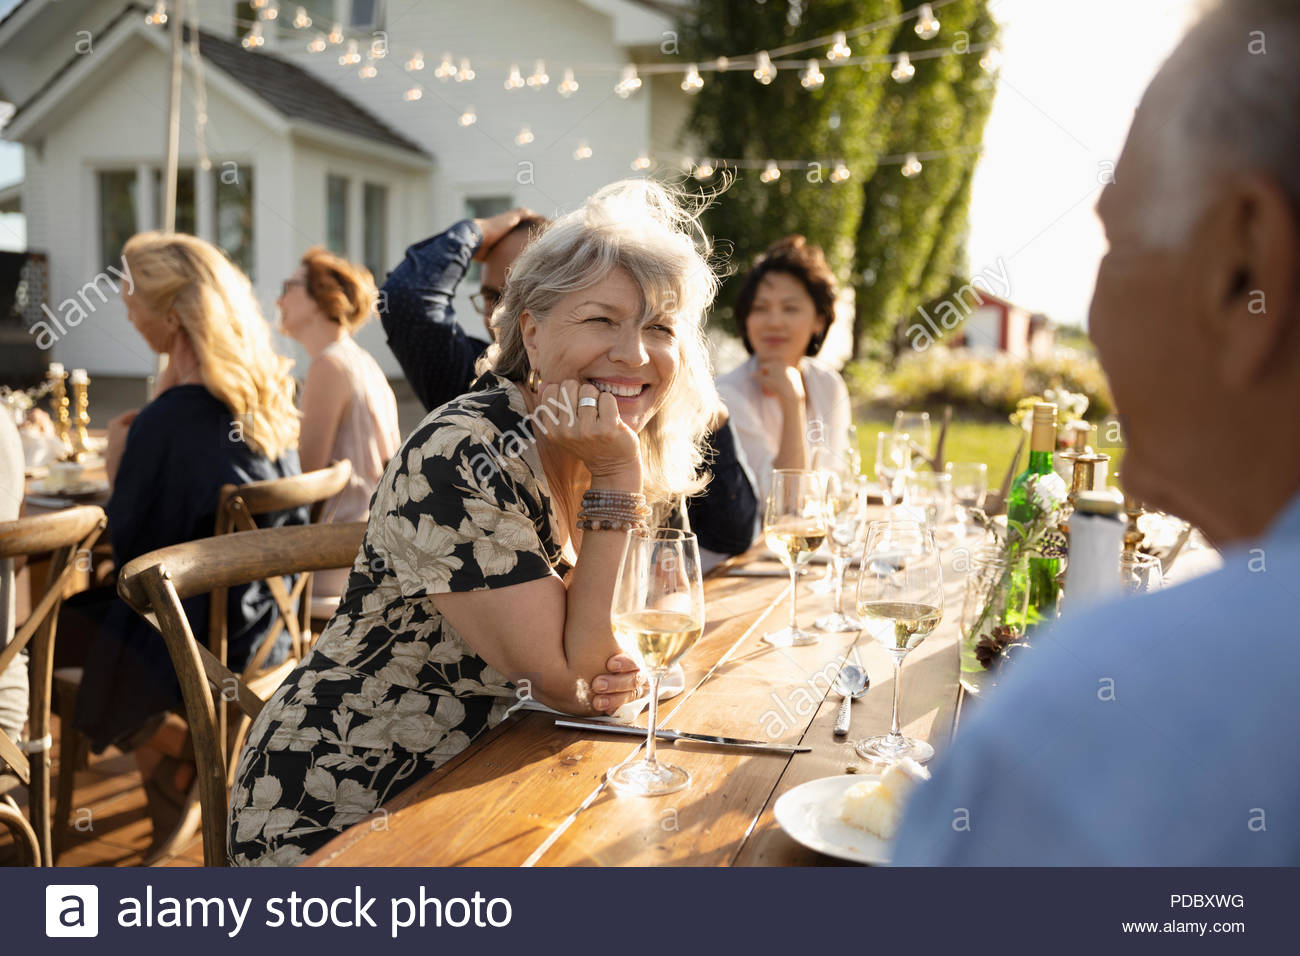 Smiling woman drinking wine, talking with man at sunny garden party - Stock Image